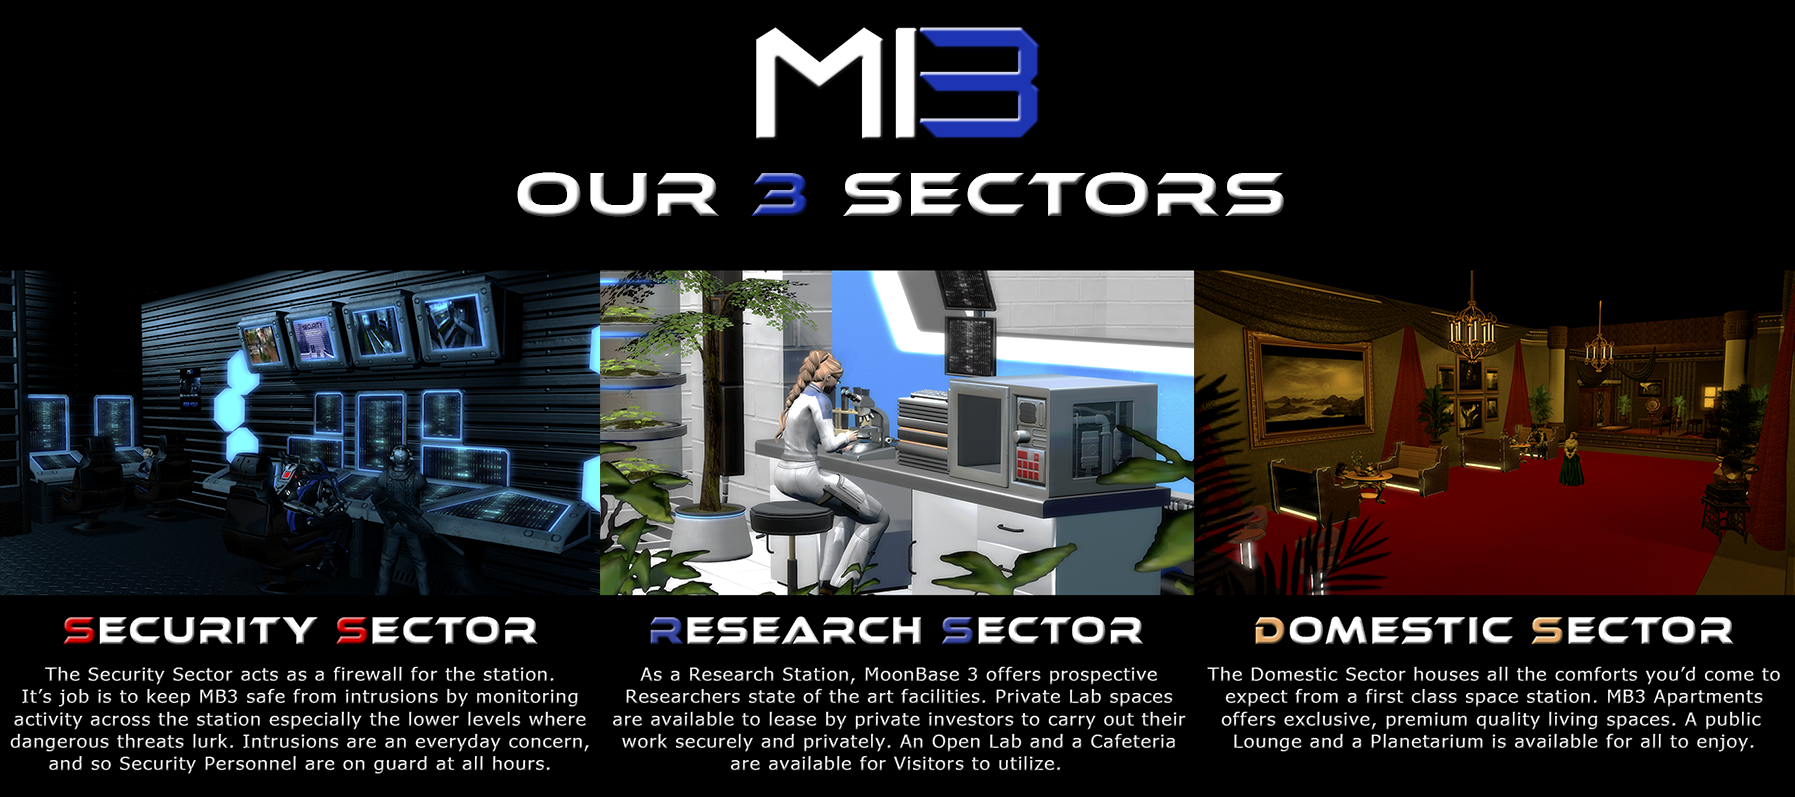 MB3 Our 3 Sectors Sept20